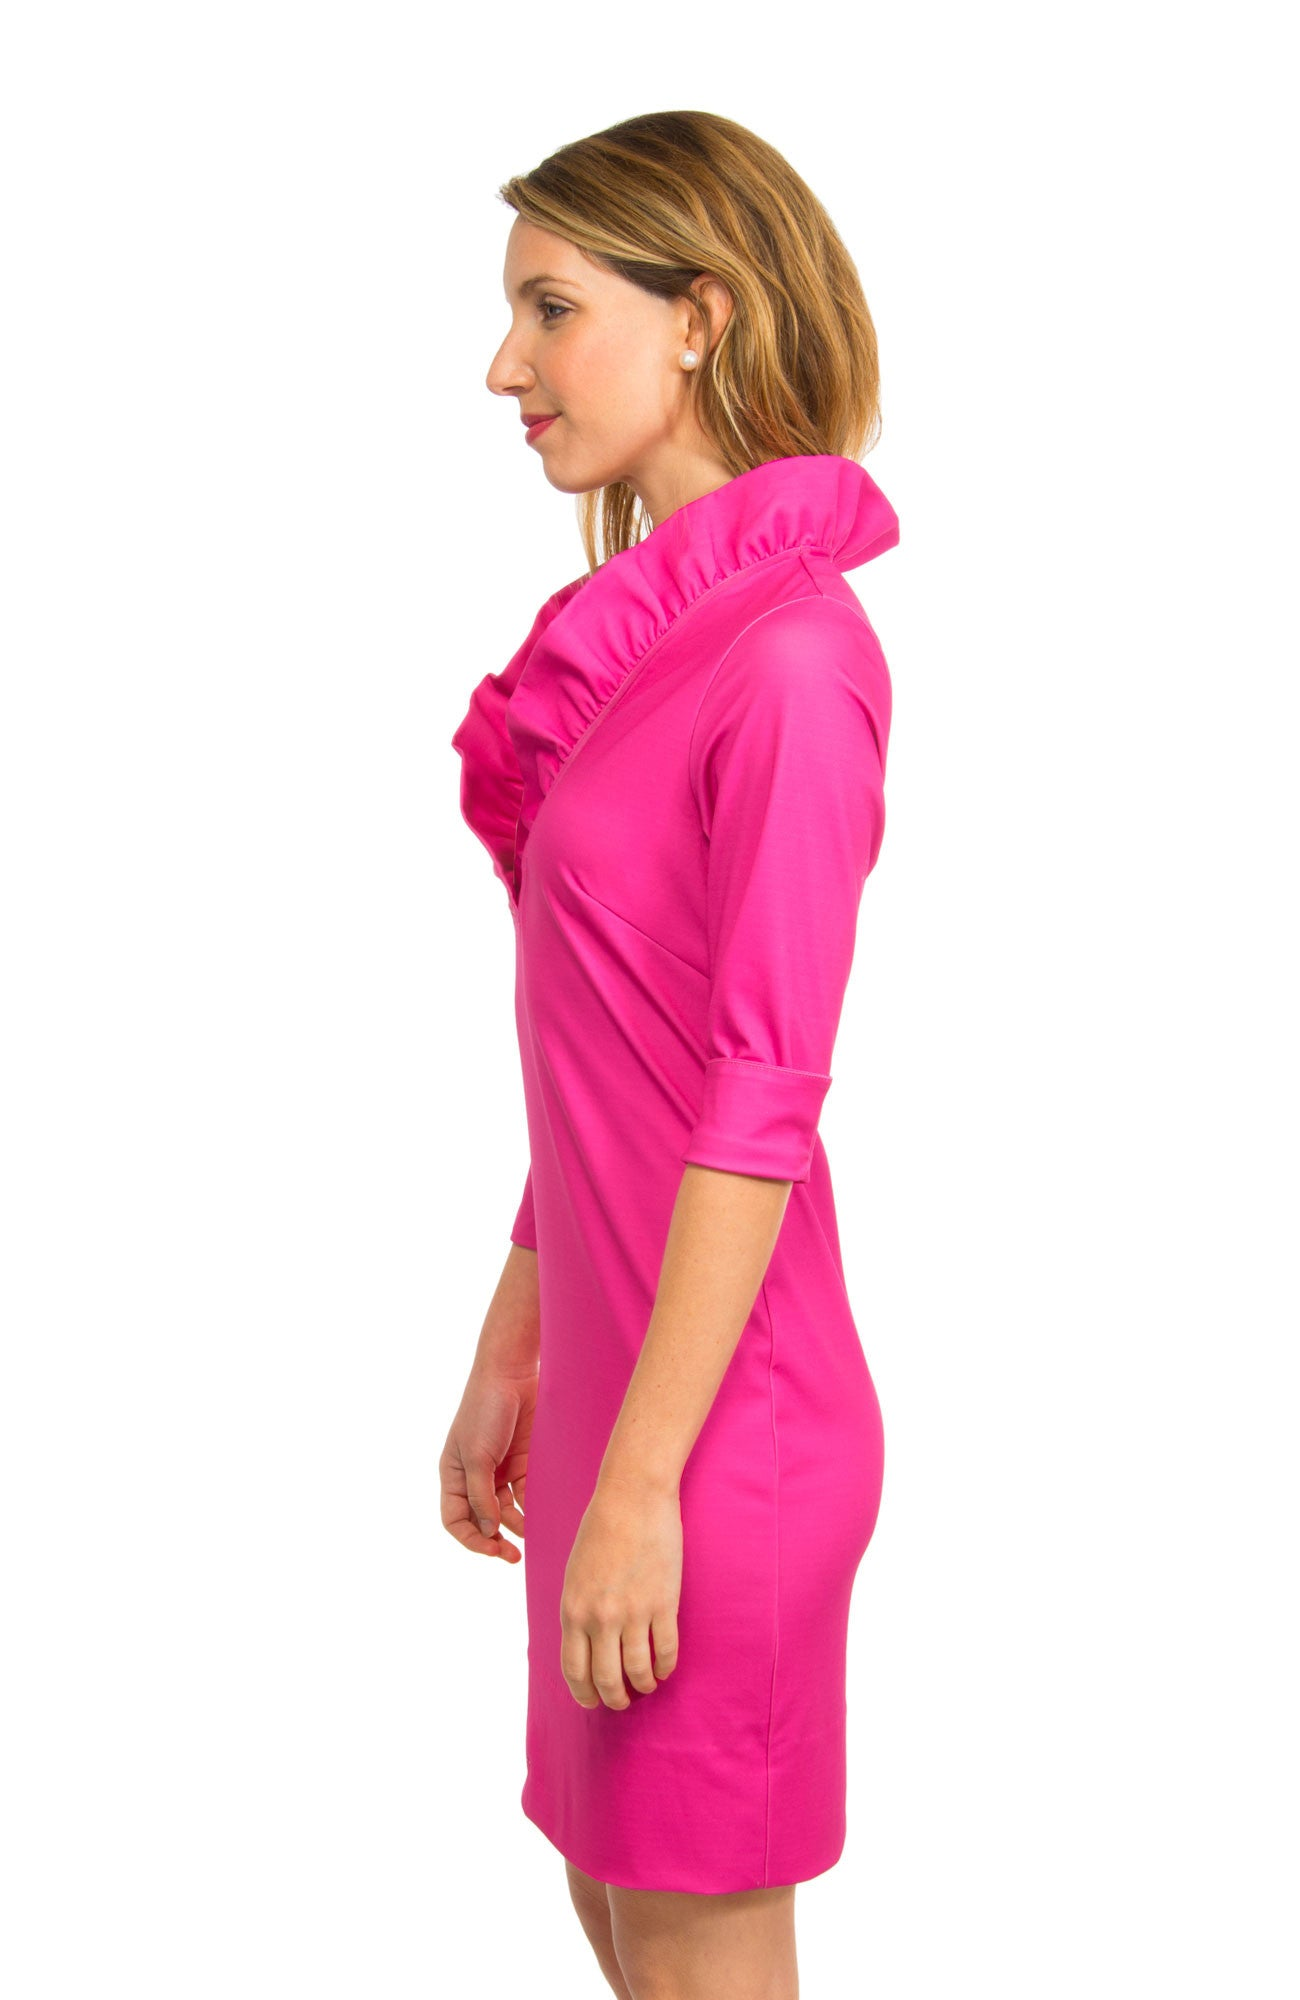 Gretchen Scott Ruff Neck Jersey Dress - Solid Pink by Gretchen Scott from THE LUCKY KNOT - 3